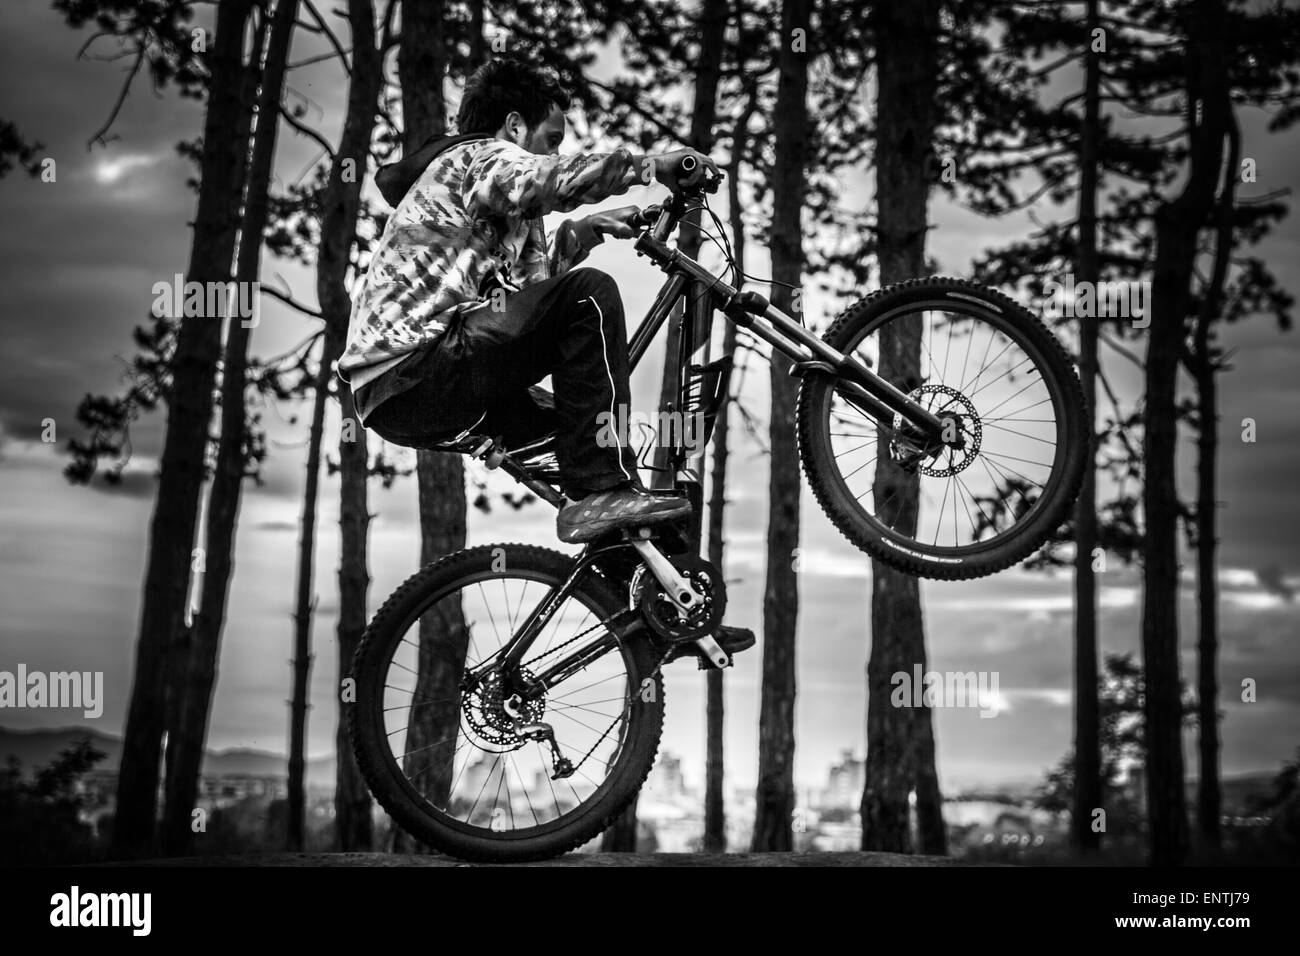 A cyclist rides on the rear wheel in the forest. - Stock Image